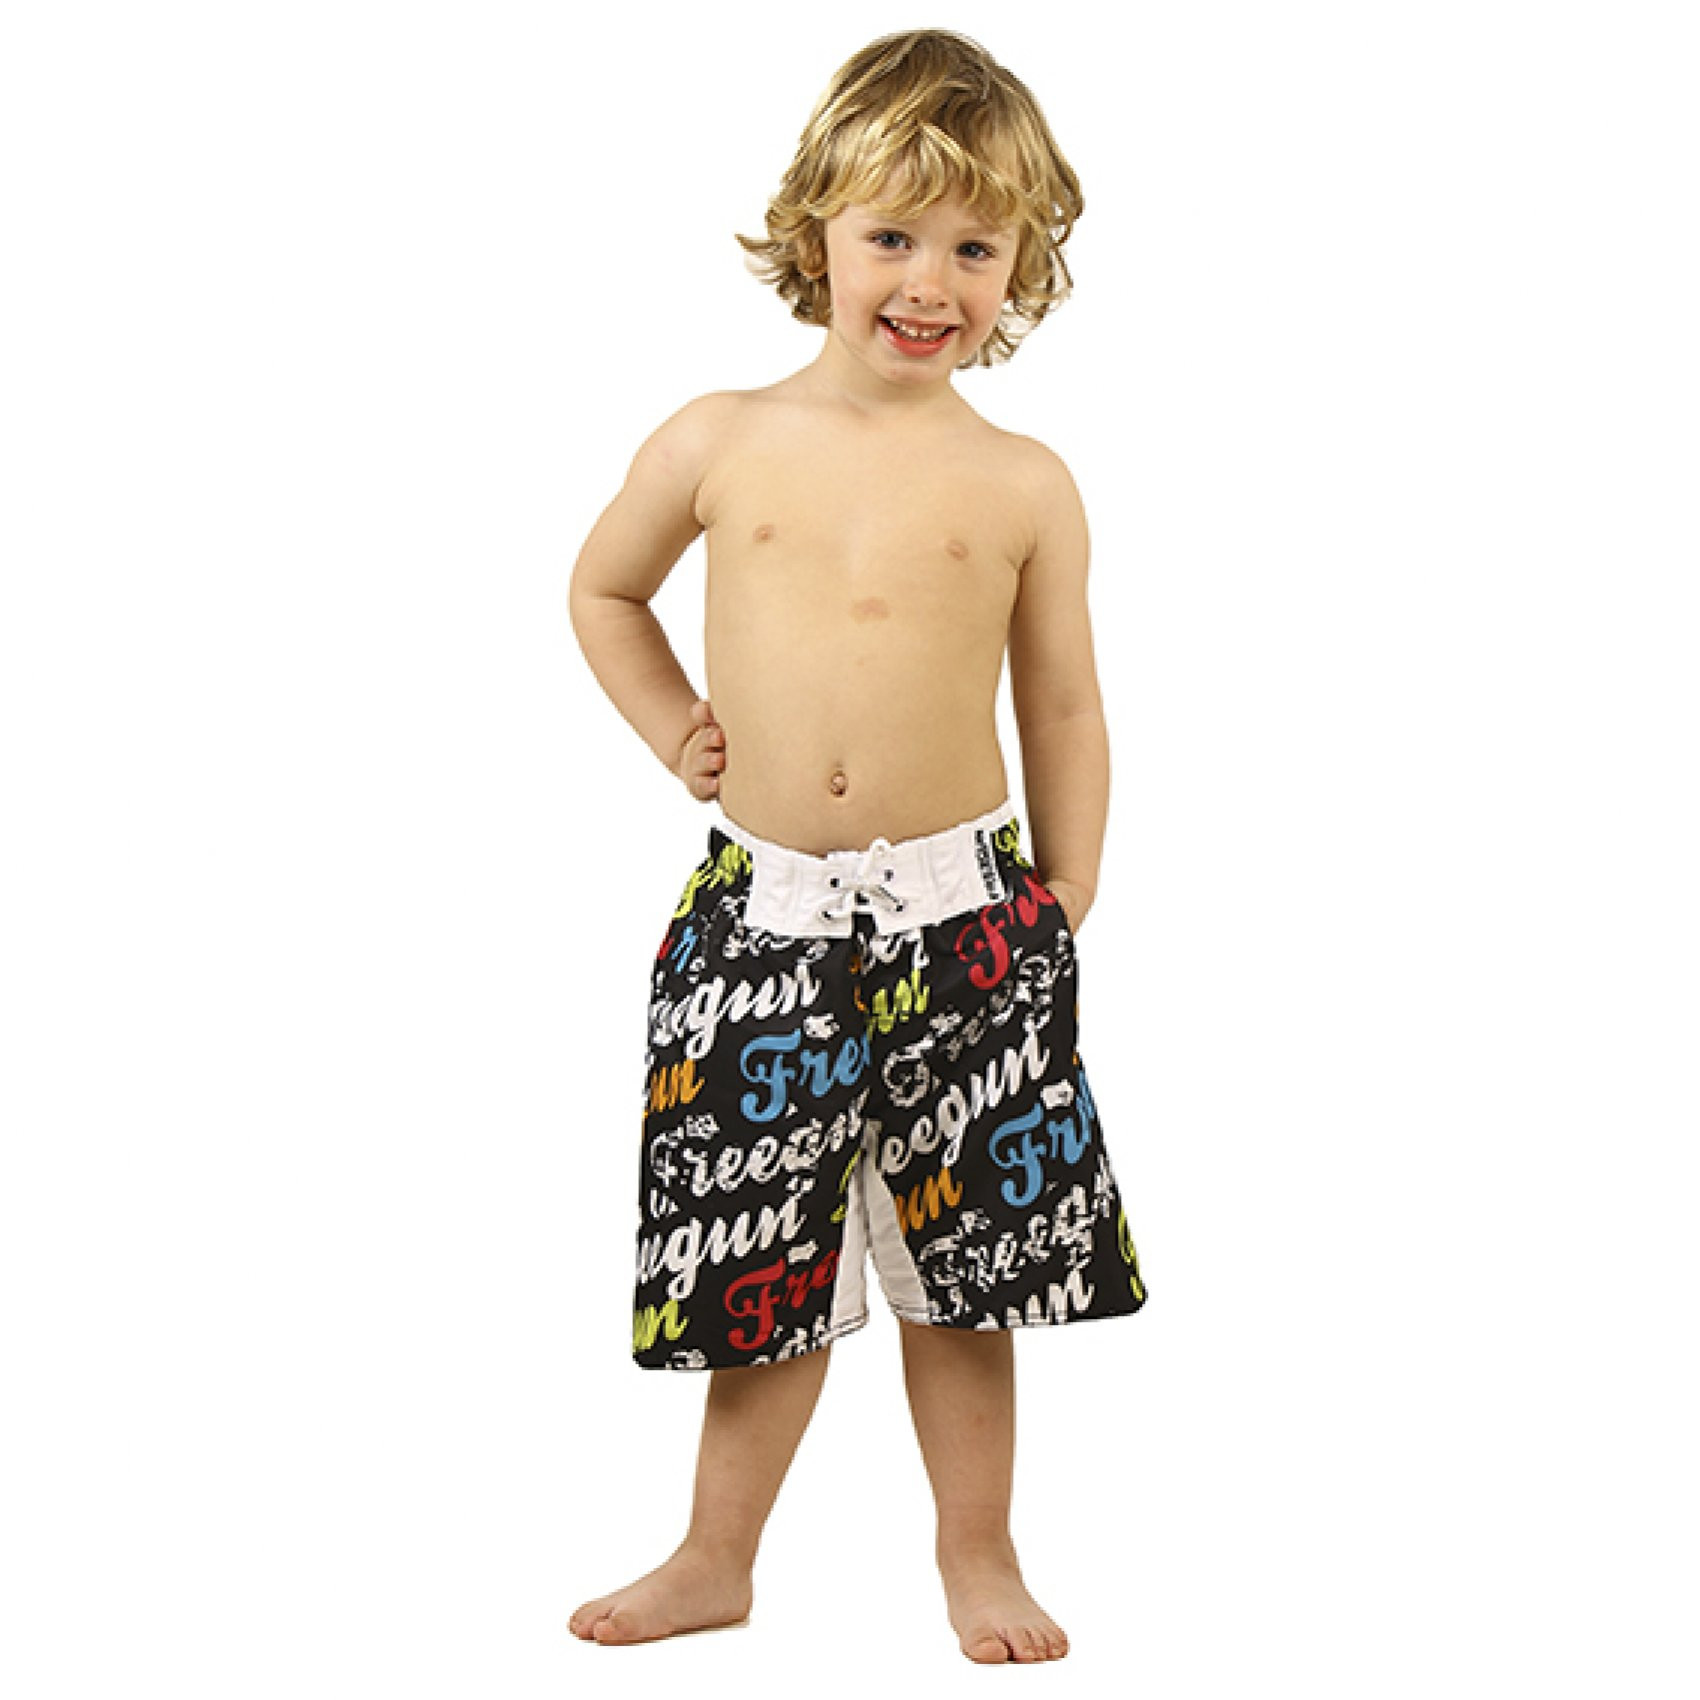 Boardshort garçon babyz corpo (photo)